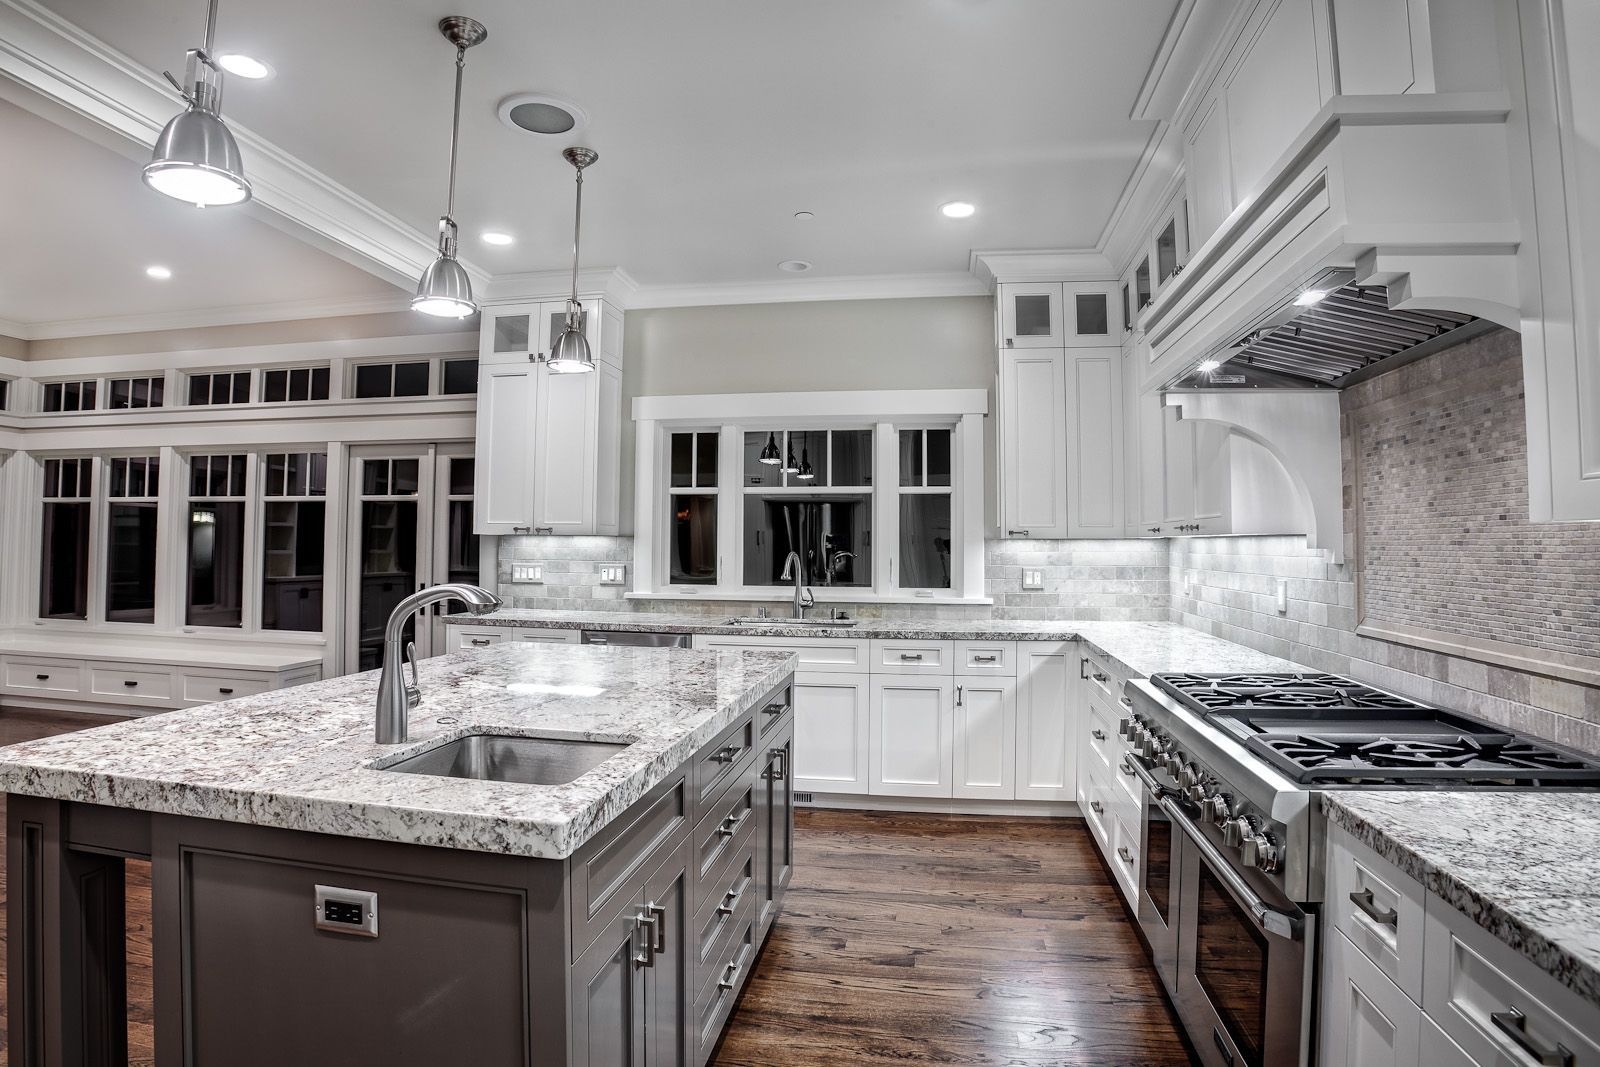 Pictures of kitchen cabinets and granite countertops -  White Granite Countertops With Dark Cabinets